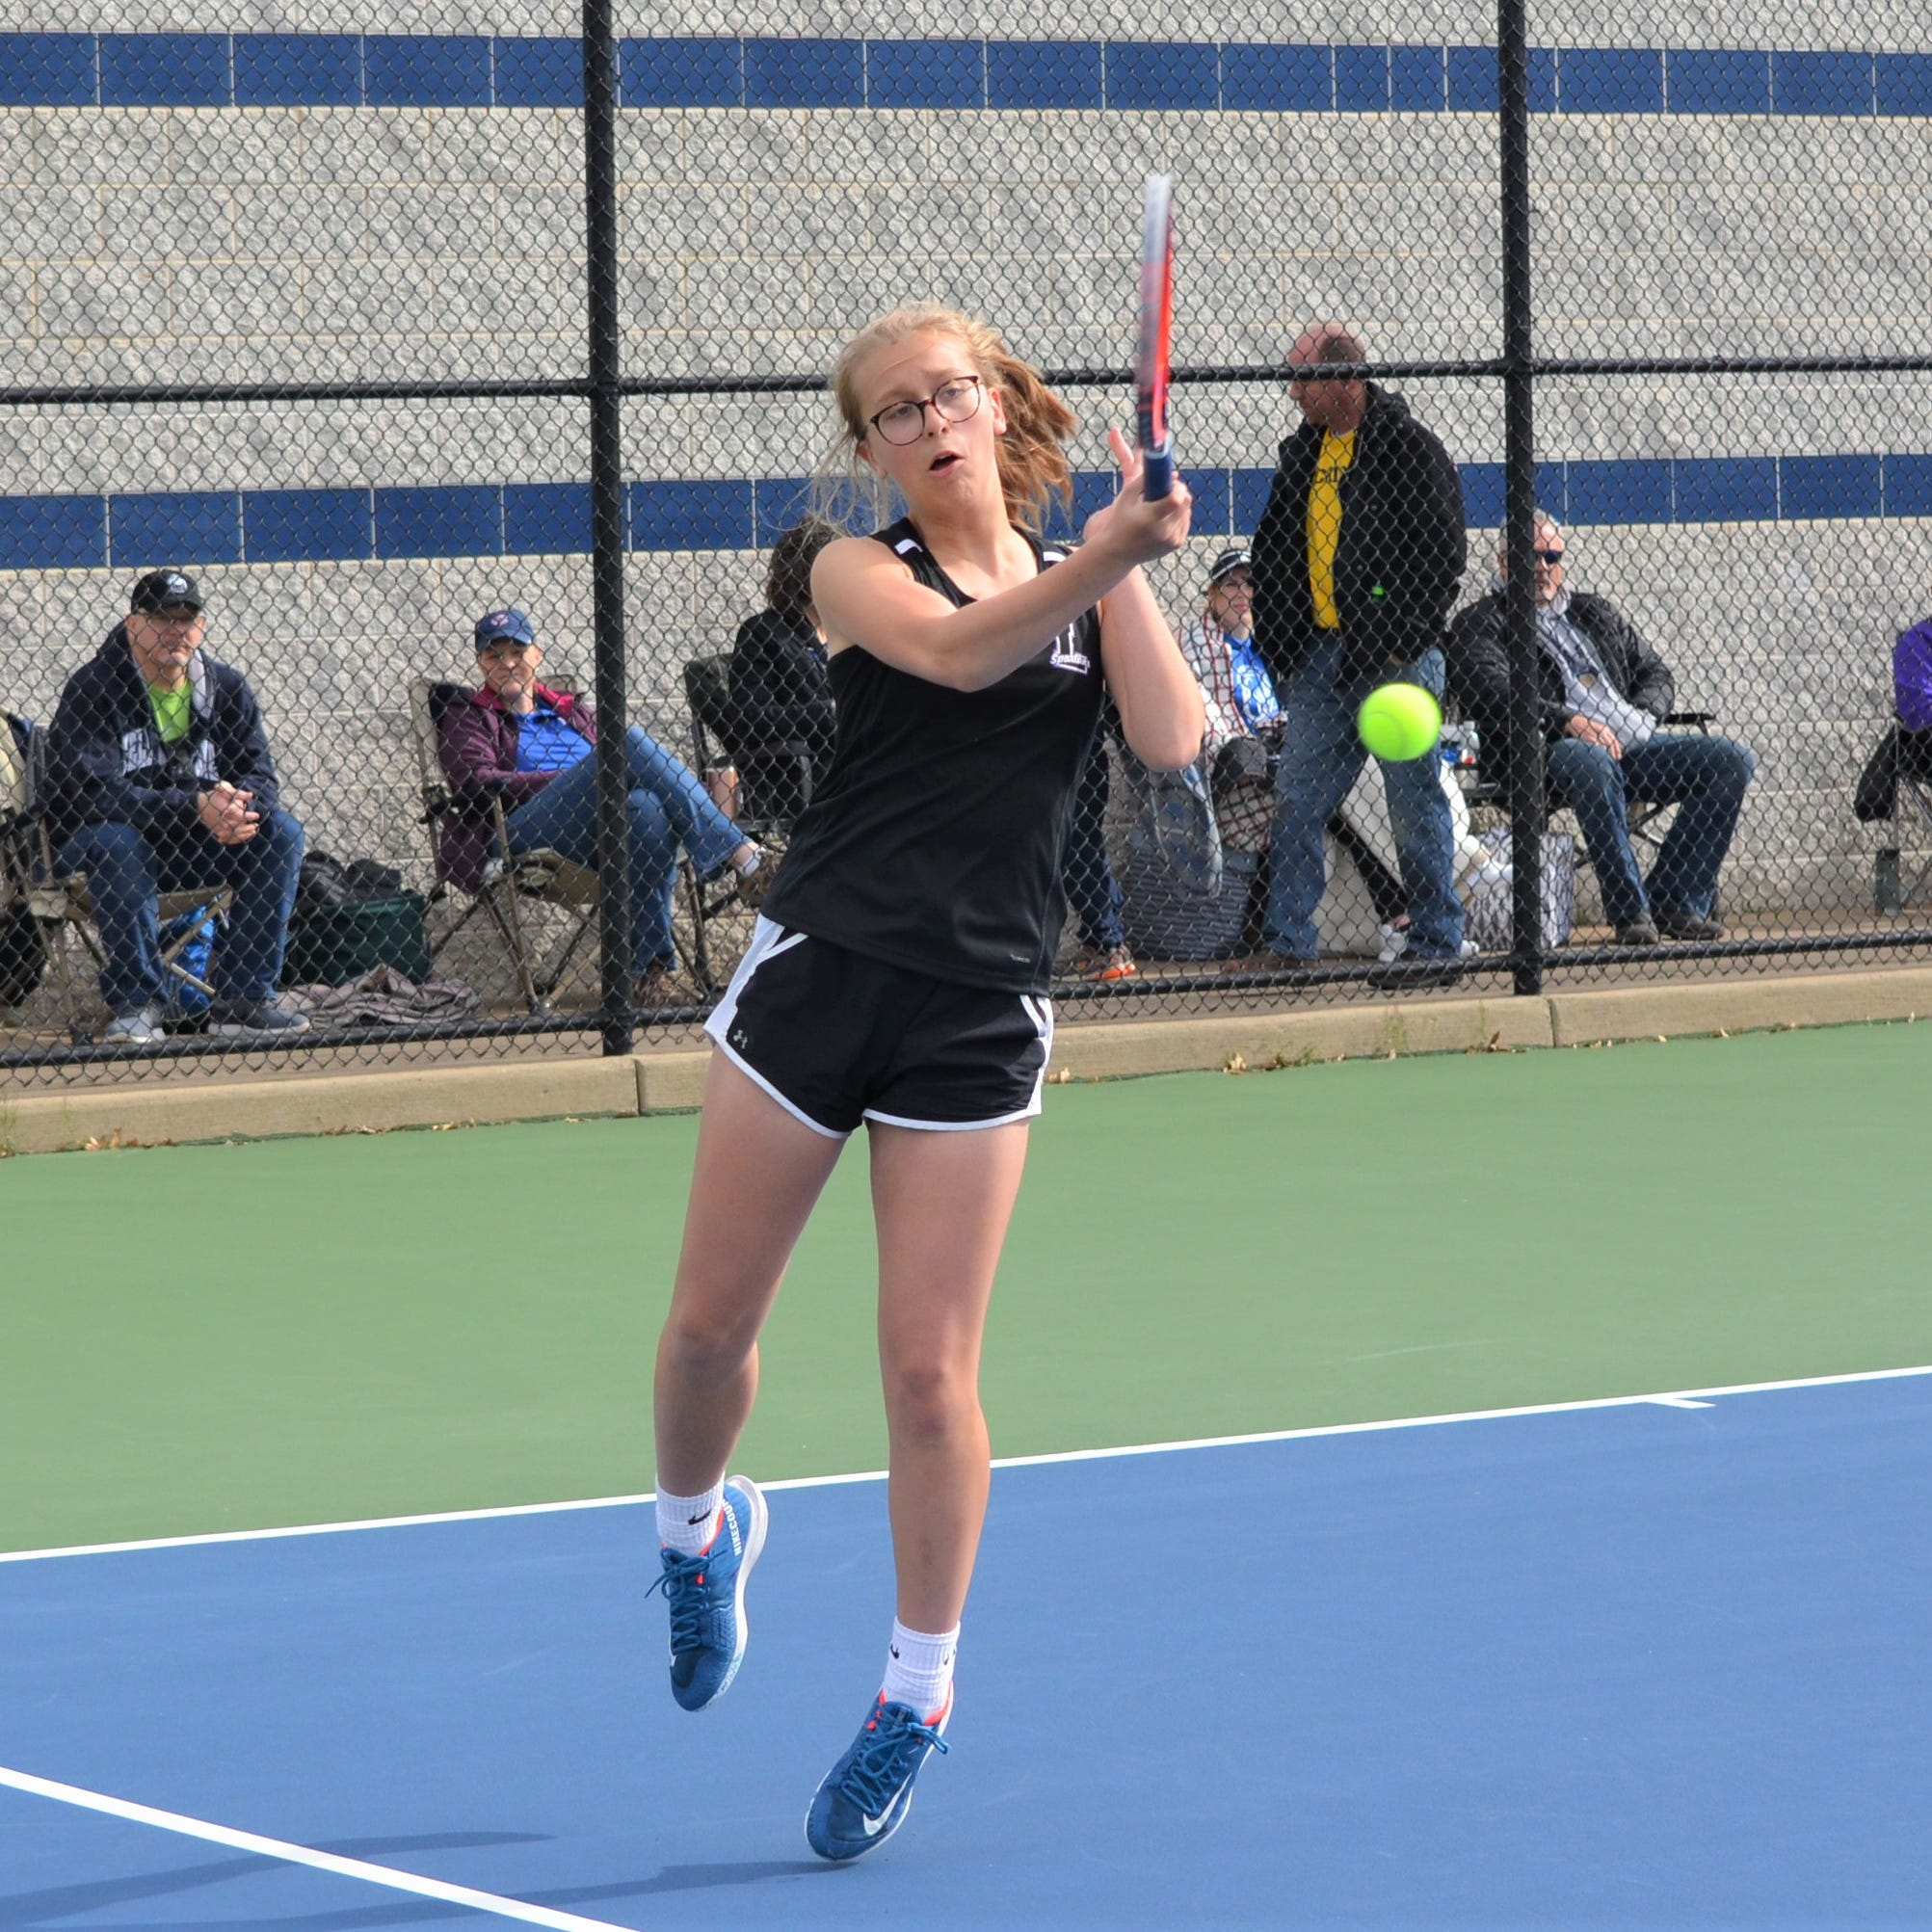 Lakeview girls win 13th straight All-City tennis title